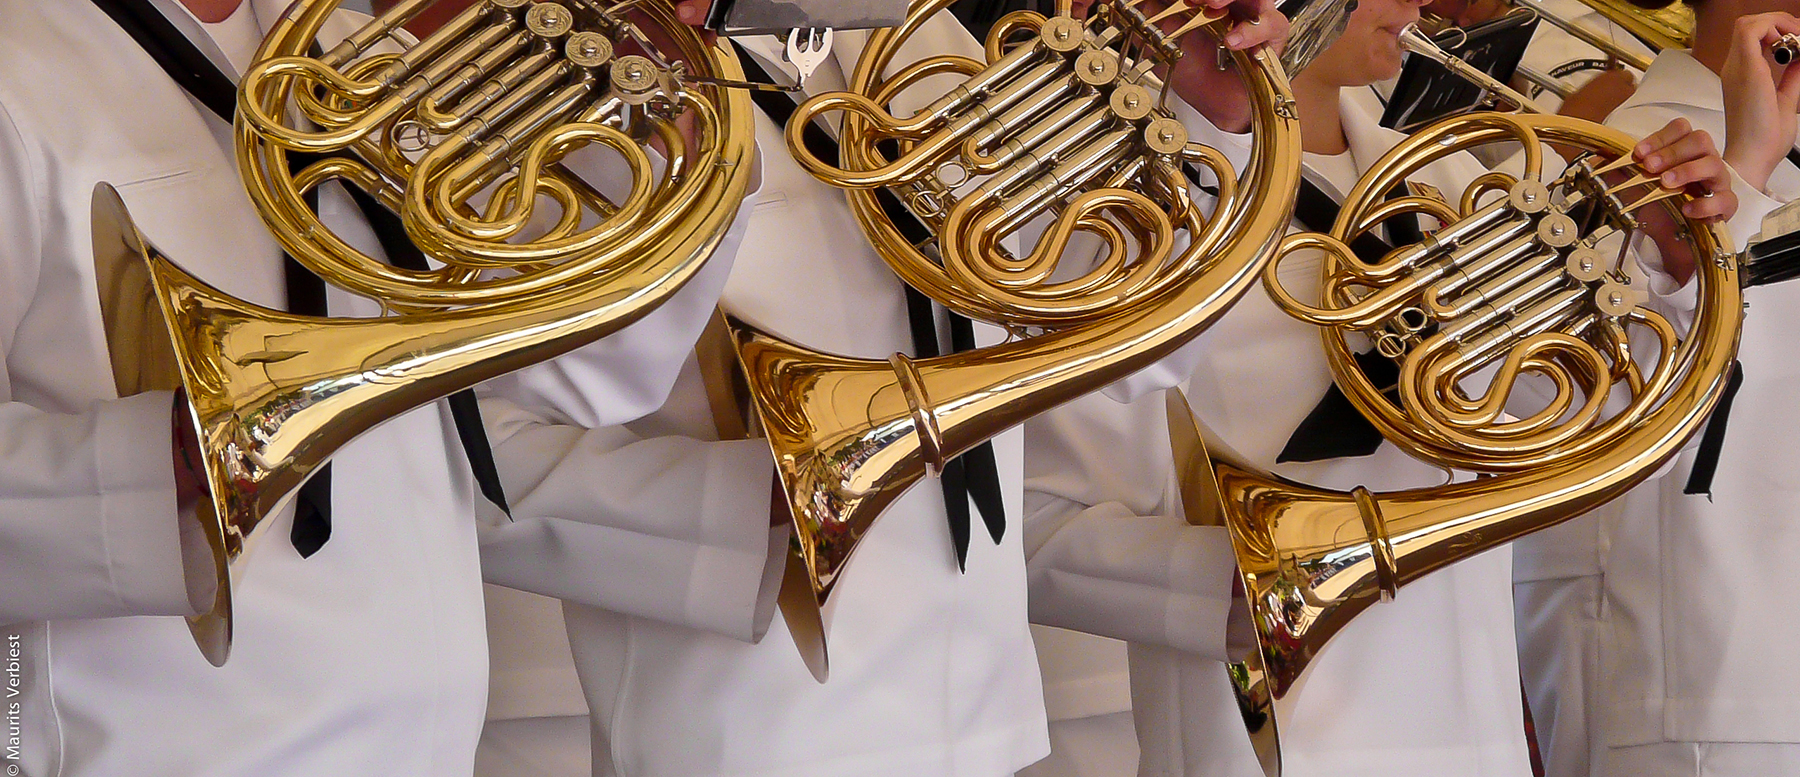 The Brass Instrument Family: French Horns, Trombones, Low Brass